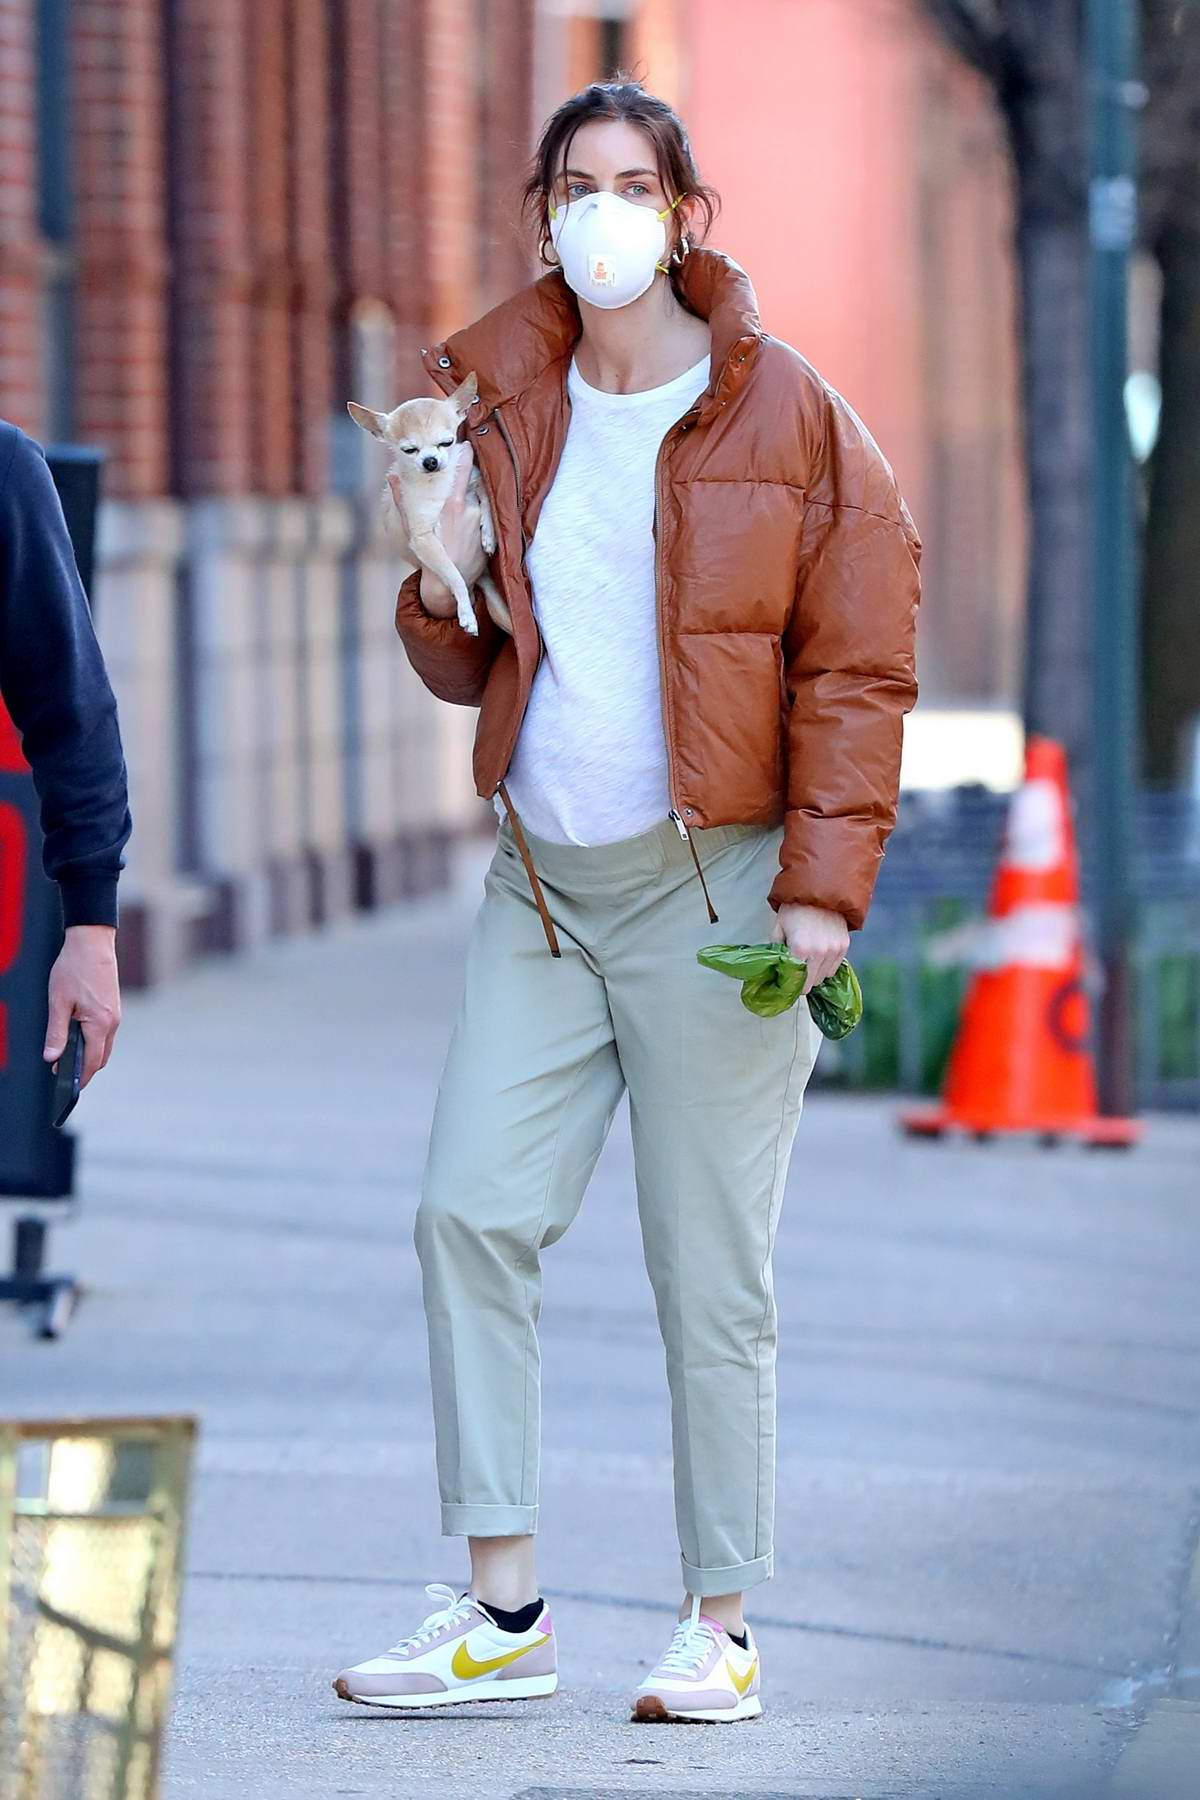 Hilary Rhoda shows her baby bump while out for a walk with husband Sean Avery in New York City